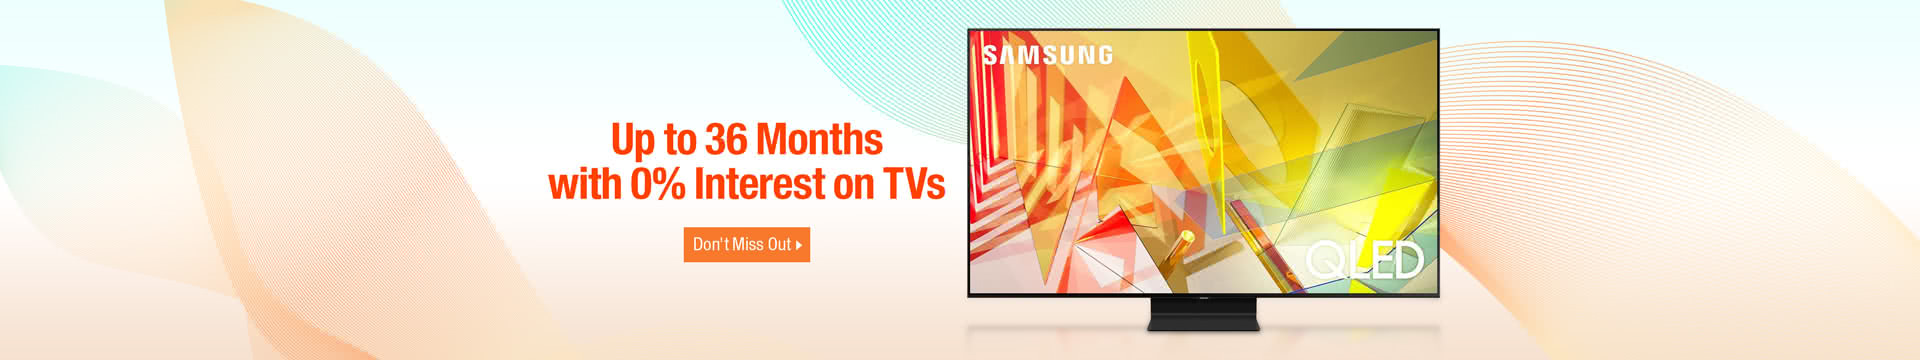 Up to 36 Months with 0% Interest on TVs